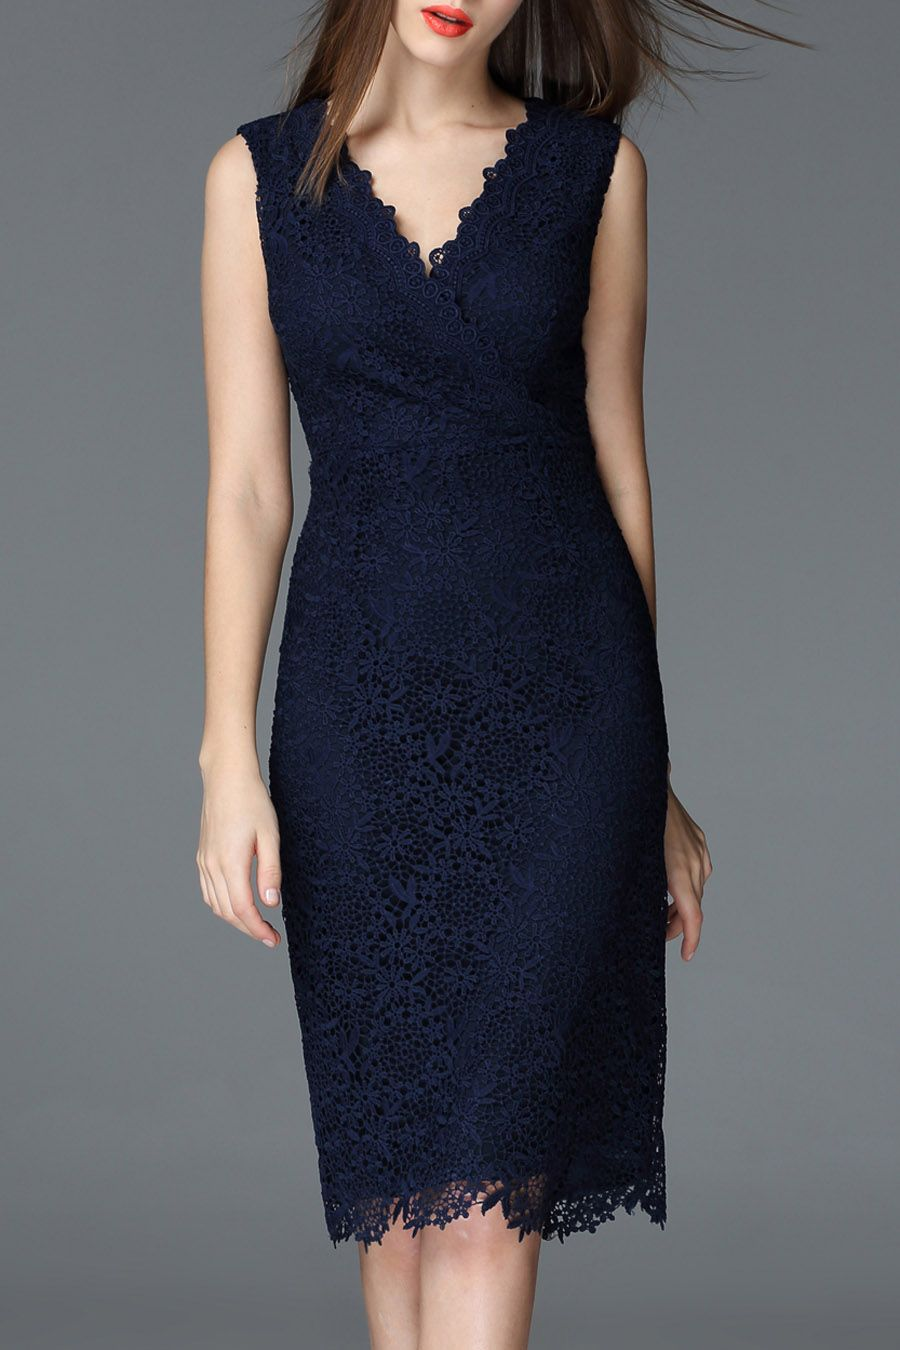 a6240e27a08a4 navy blue lace dress For the wedding | Style | Elegant midi dresses ...